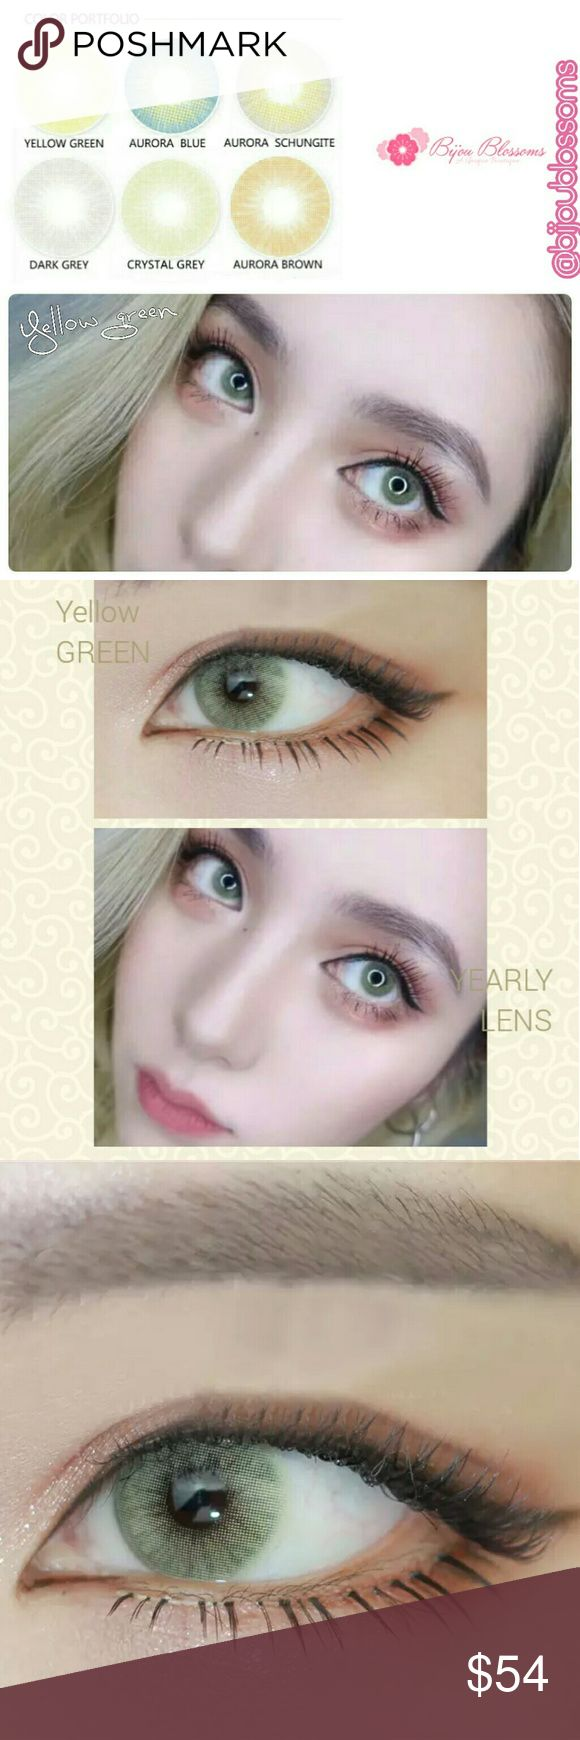 Yellow Green Hidrocor Yearly Color Contact Lenses Beautiful Aurora Series Hidrocor natural blend color contact lens. This listing is for one pair of plano -0.00 (no prescription) yearly disposable color contacts lens in the color Yellow Green.?   Details are as follows:  Expiration date: 12.2021 Base curve:8.5mm Diameter:14.2mm Center thickness: 0.08mm? Water content: 40% Main material: HEMA Lenses hardness: Soft Life span: One year  Please Note: 1.Brand new, high quality with fast shipping…